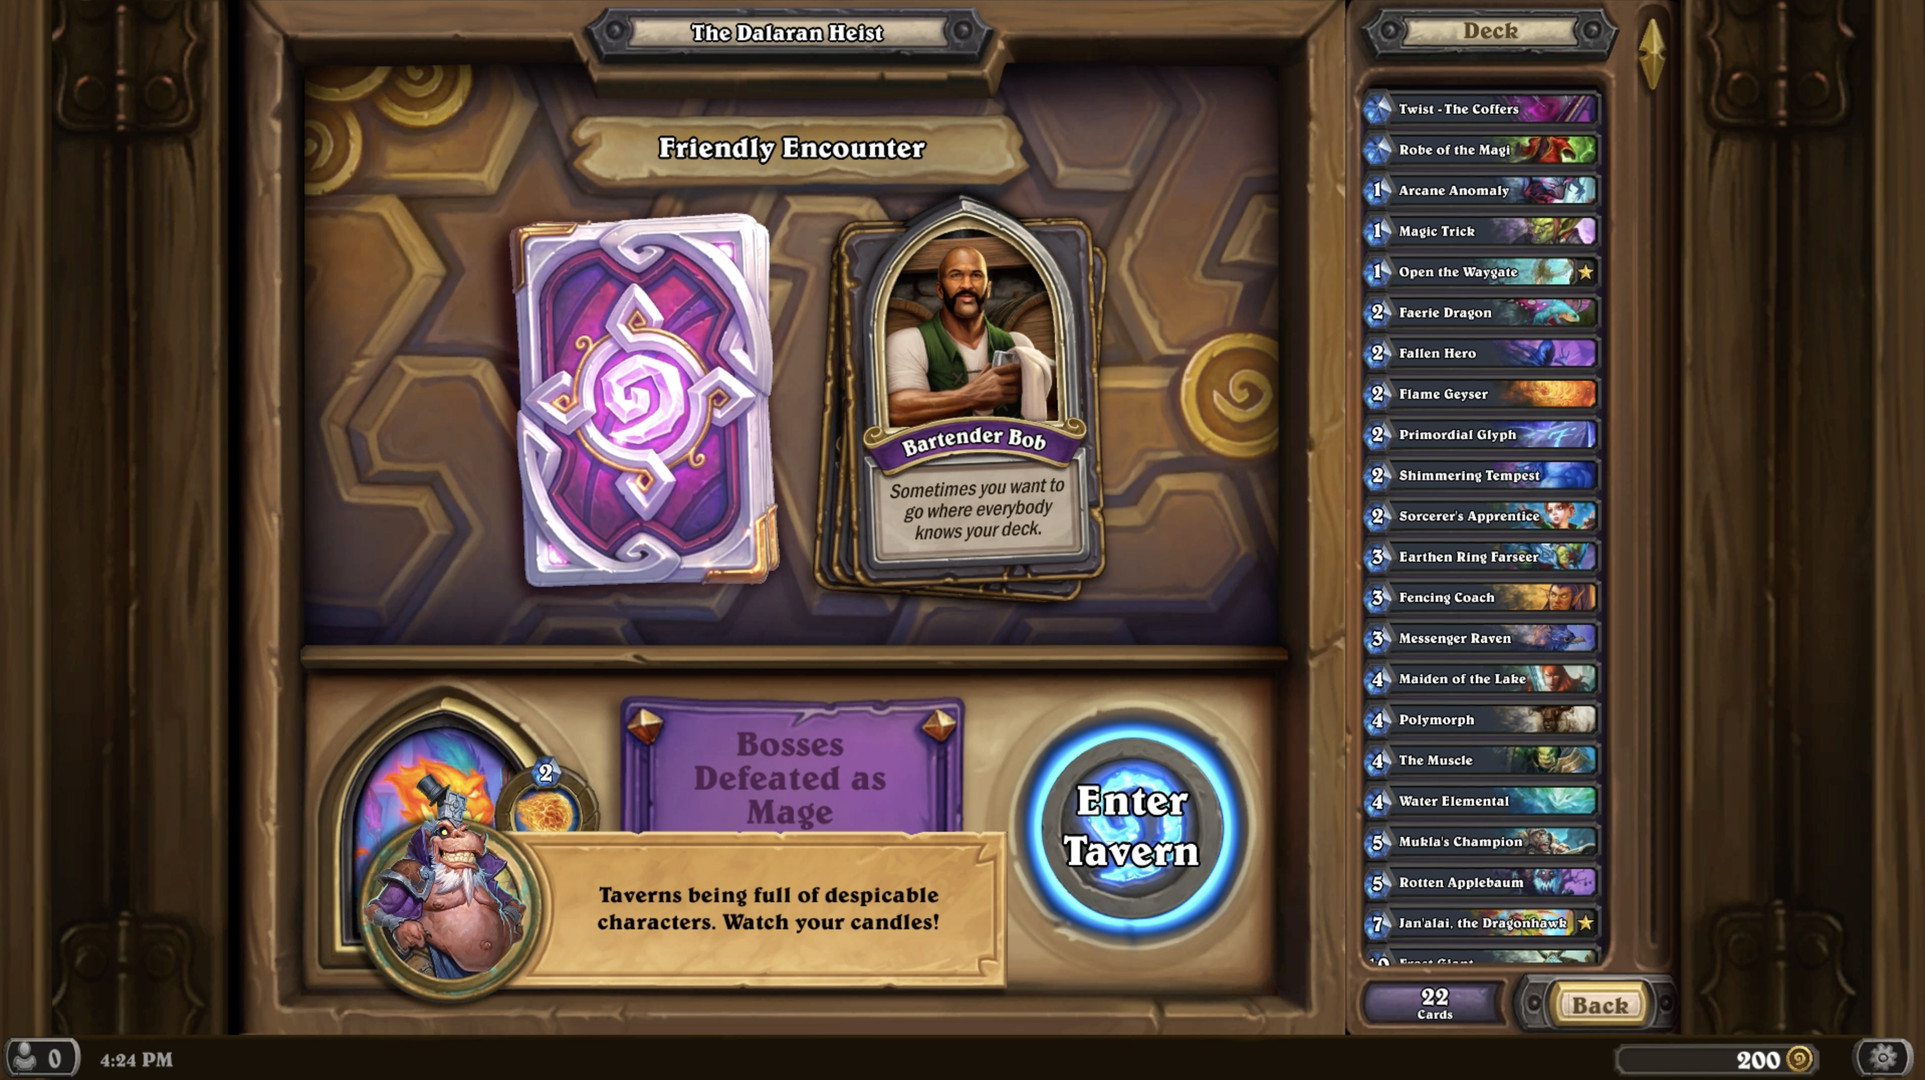 Hearthstone's Dalaran Heist gives the game's solo campaign a big